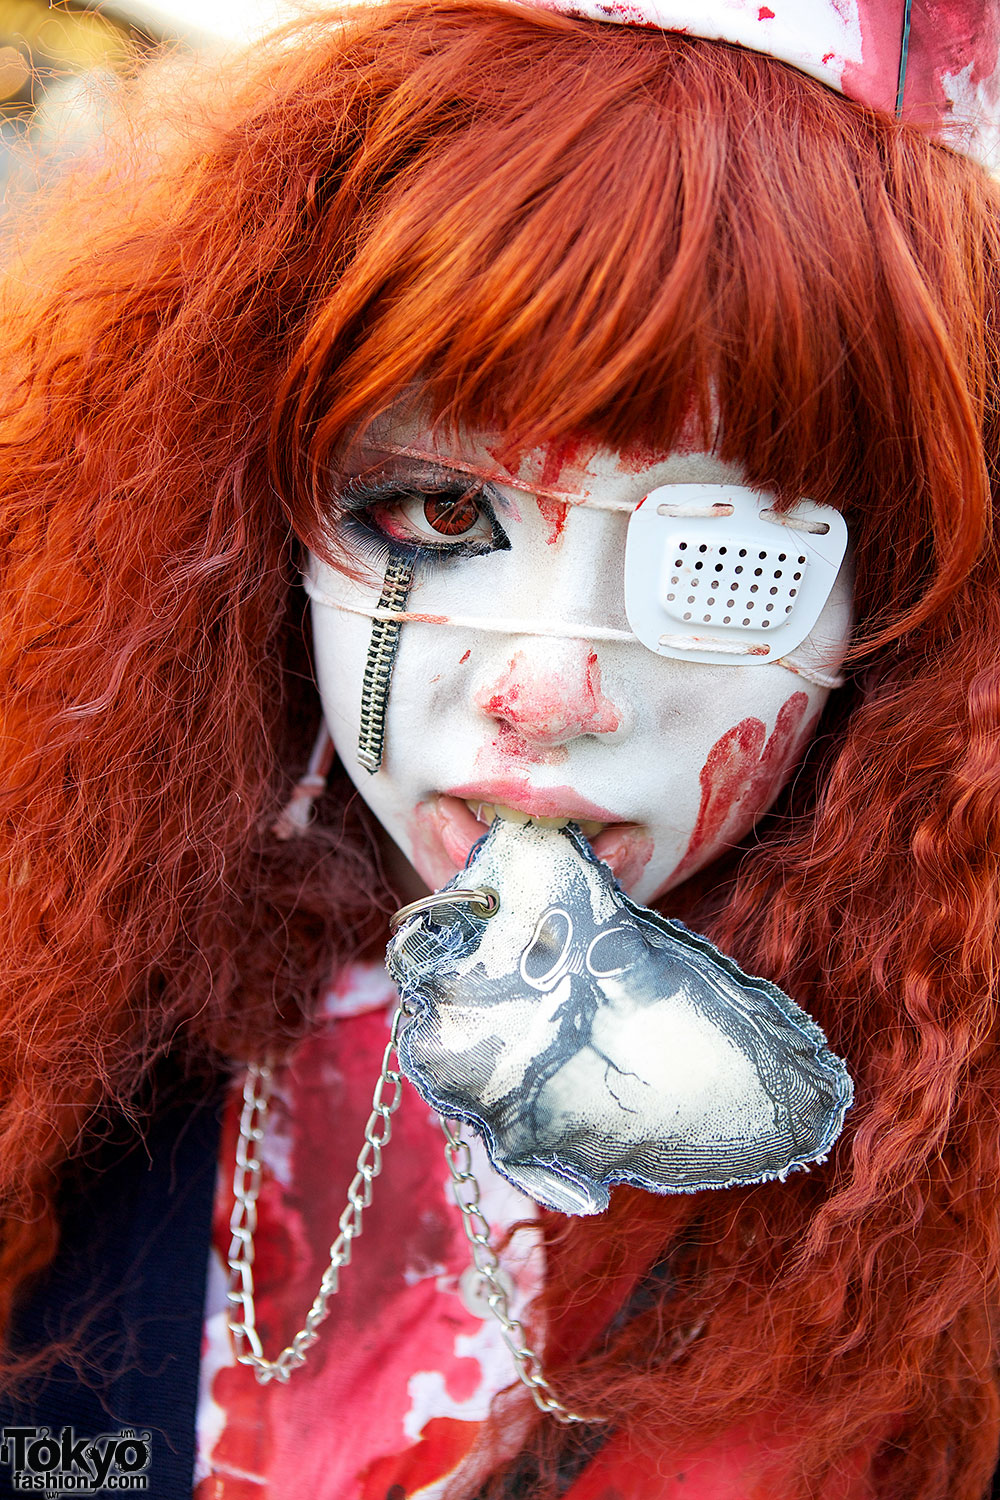 Japanese Nurse with Eye Patch – Tokyo Fashion News